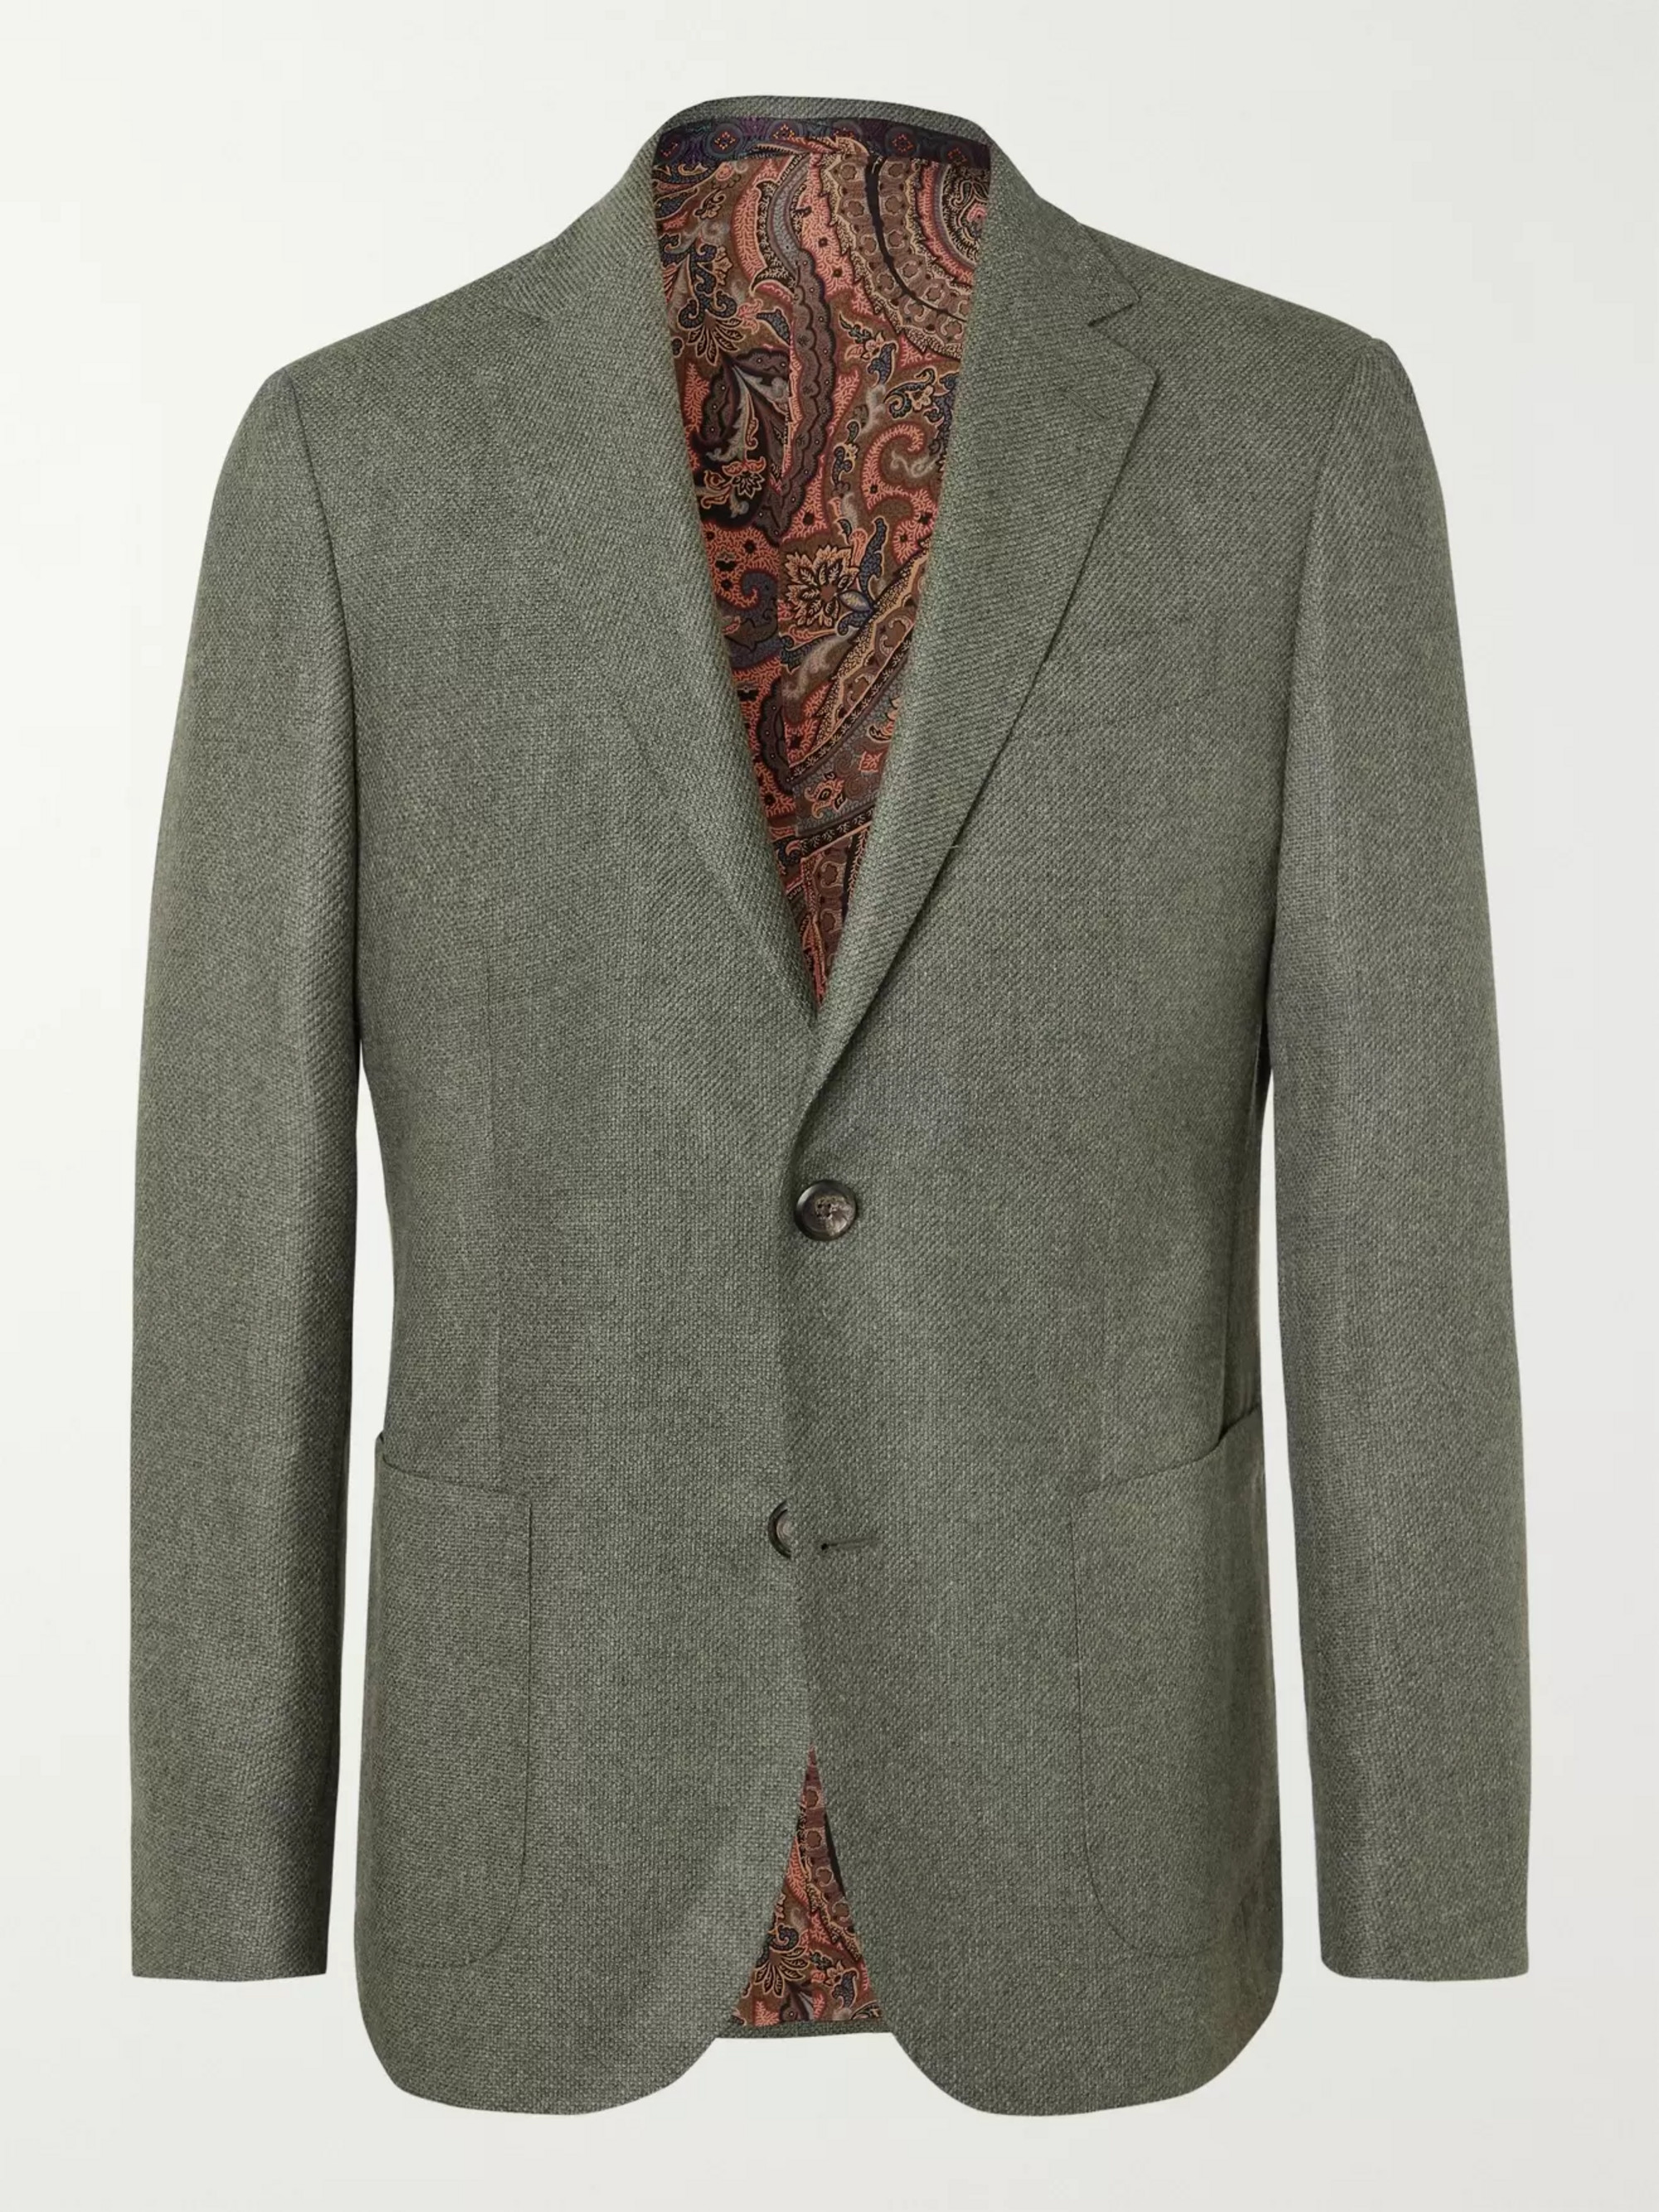 Etro Green Slim-Fit Wool and Cashmere-Blend Hopsack Blazer